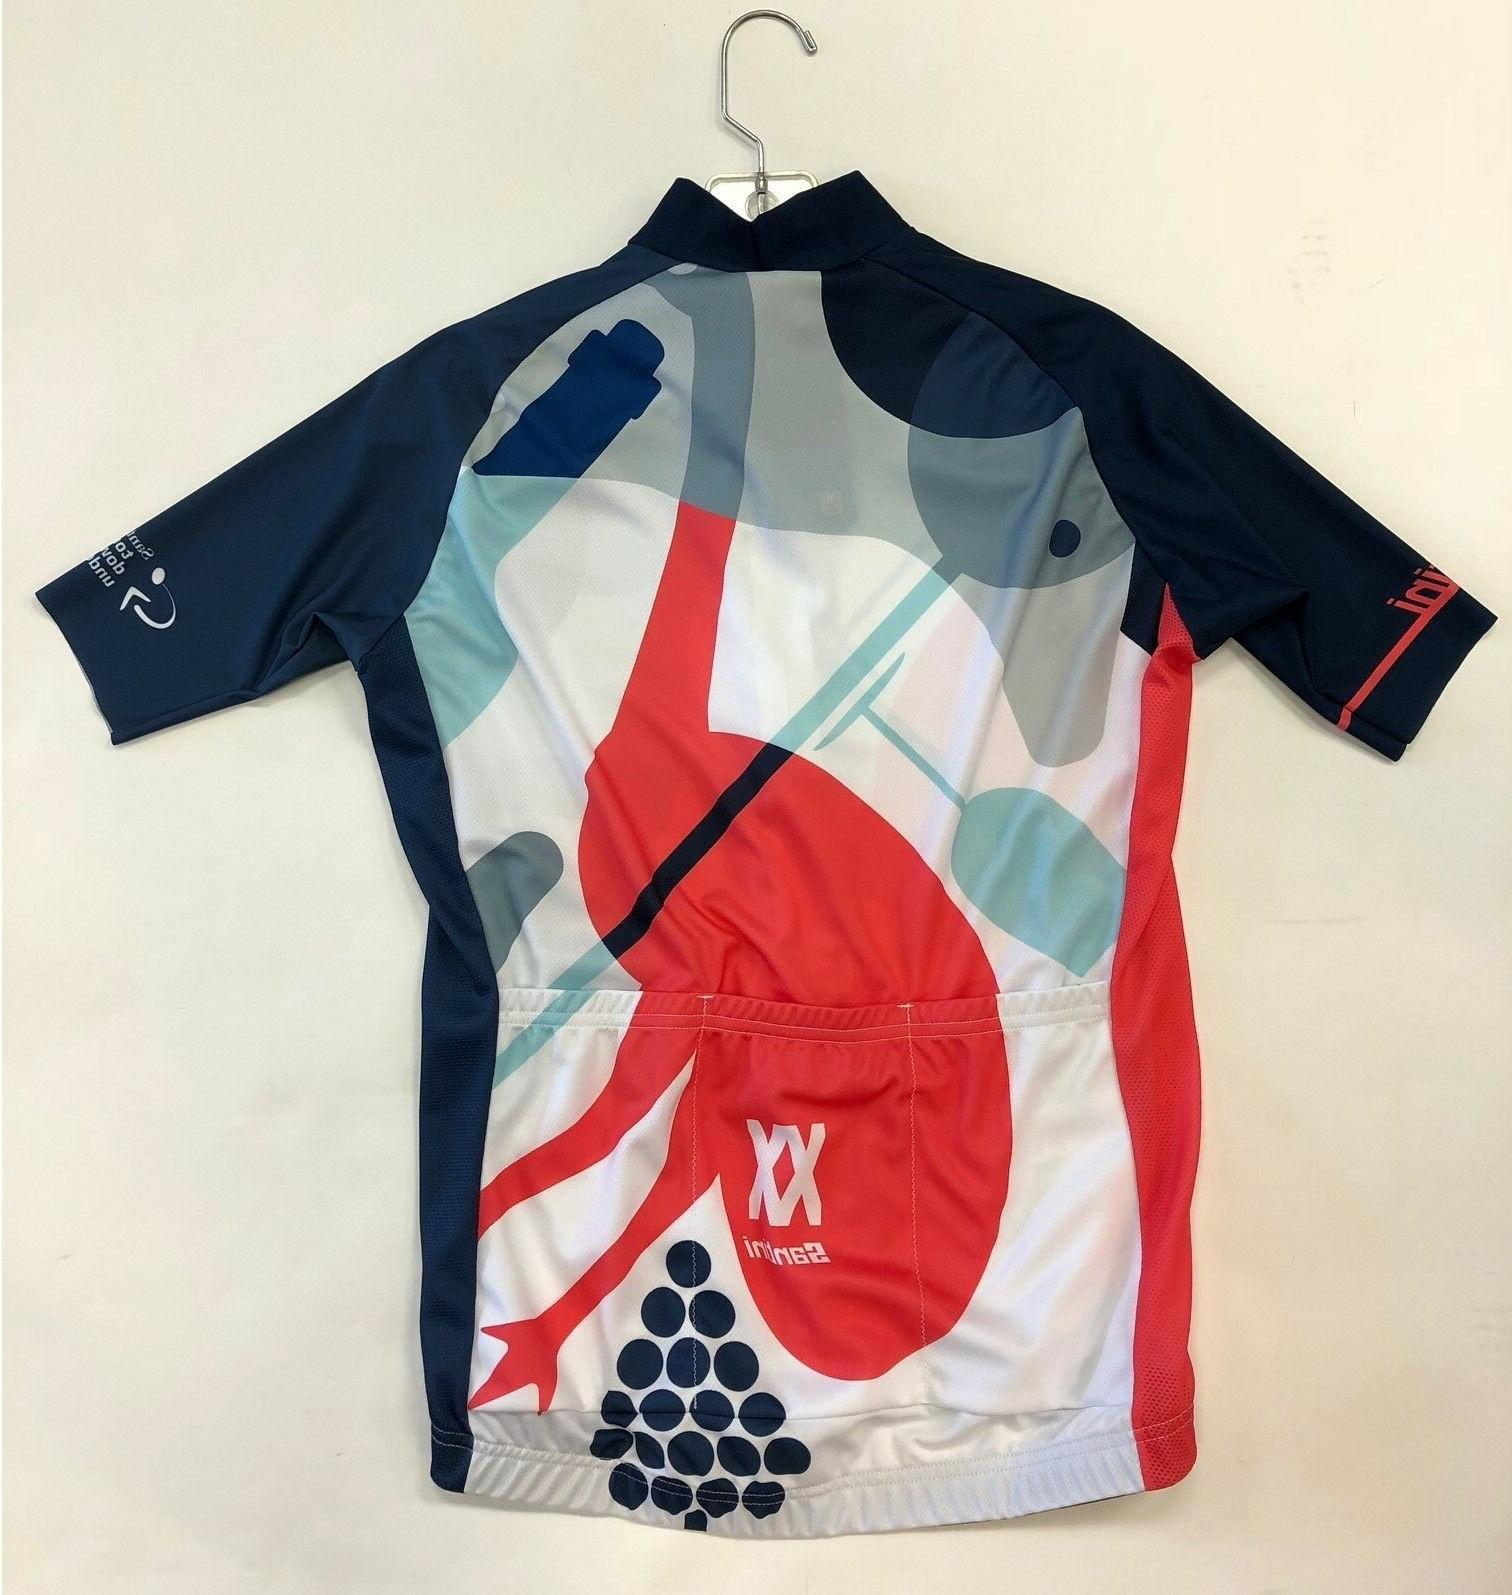 2018 20th anniversary Cycling Jersey